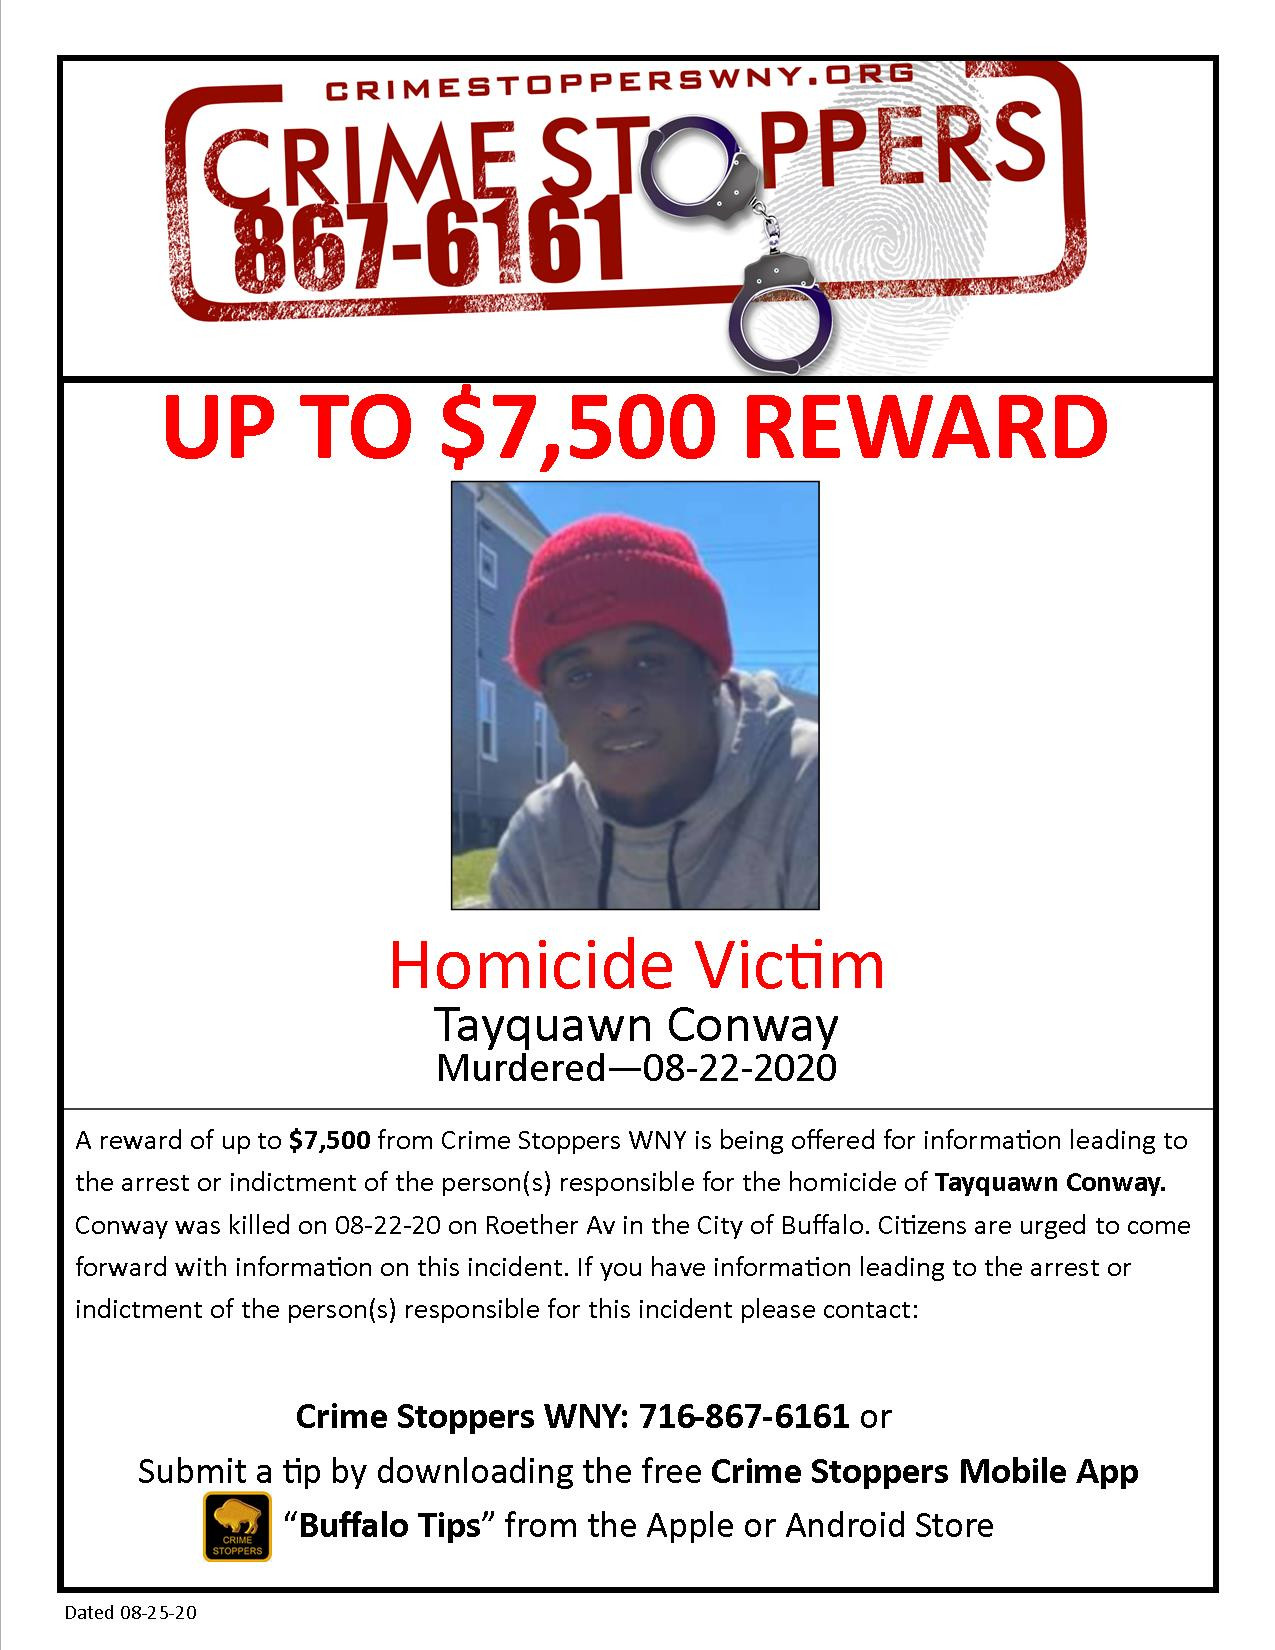 CrimeStoppers_HomicideVictim_TayquawnConway